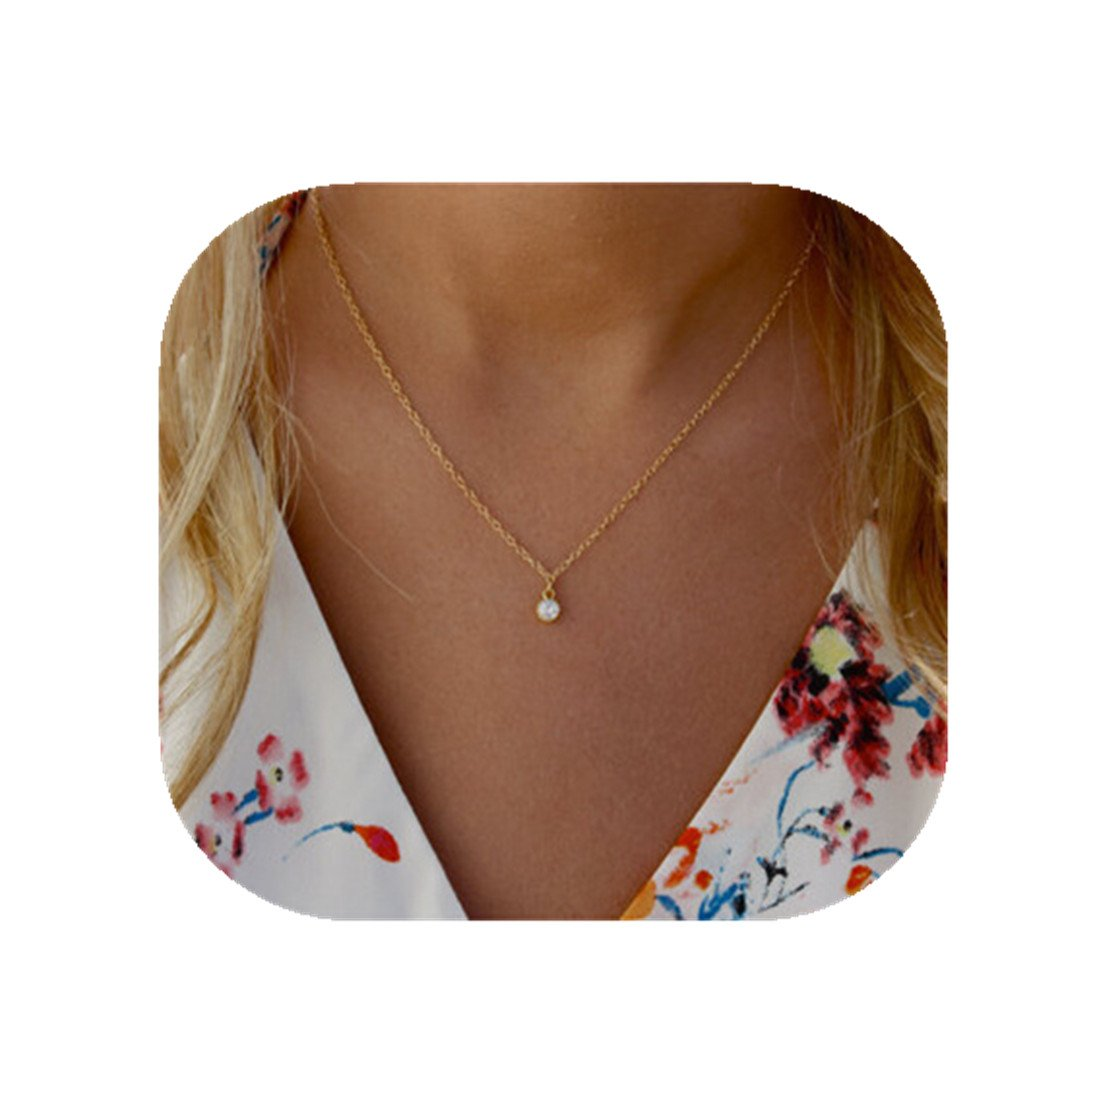 CHENCAN01 Simple Alloy Short Clavicle Necklace Drill Pendant Gold Plated Necklace/Exquisite Single Stone Necklace/Simple Necklace/Bridal Party Gift